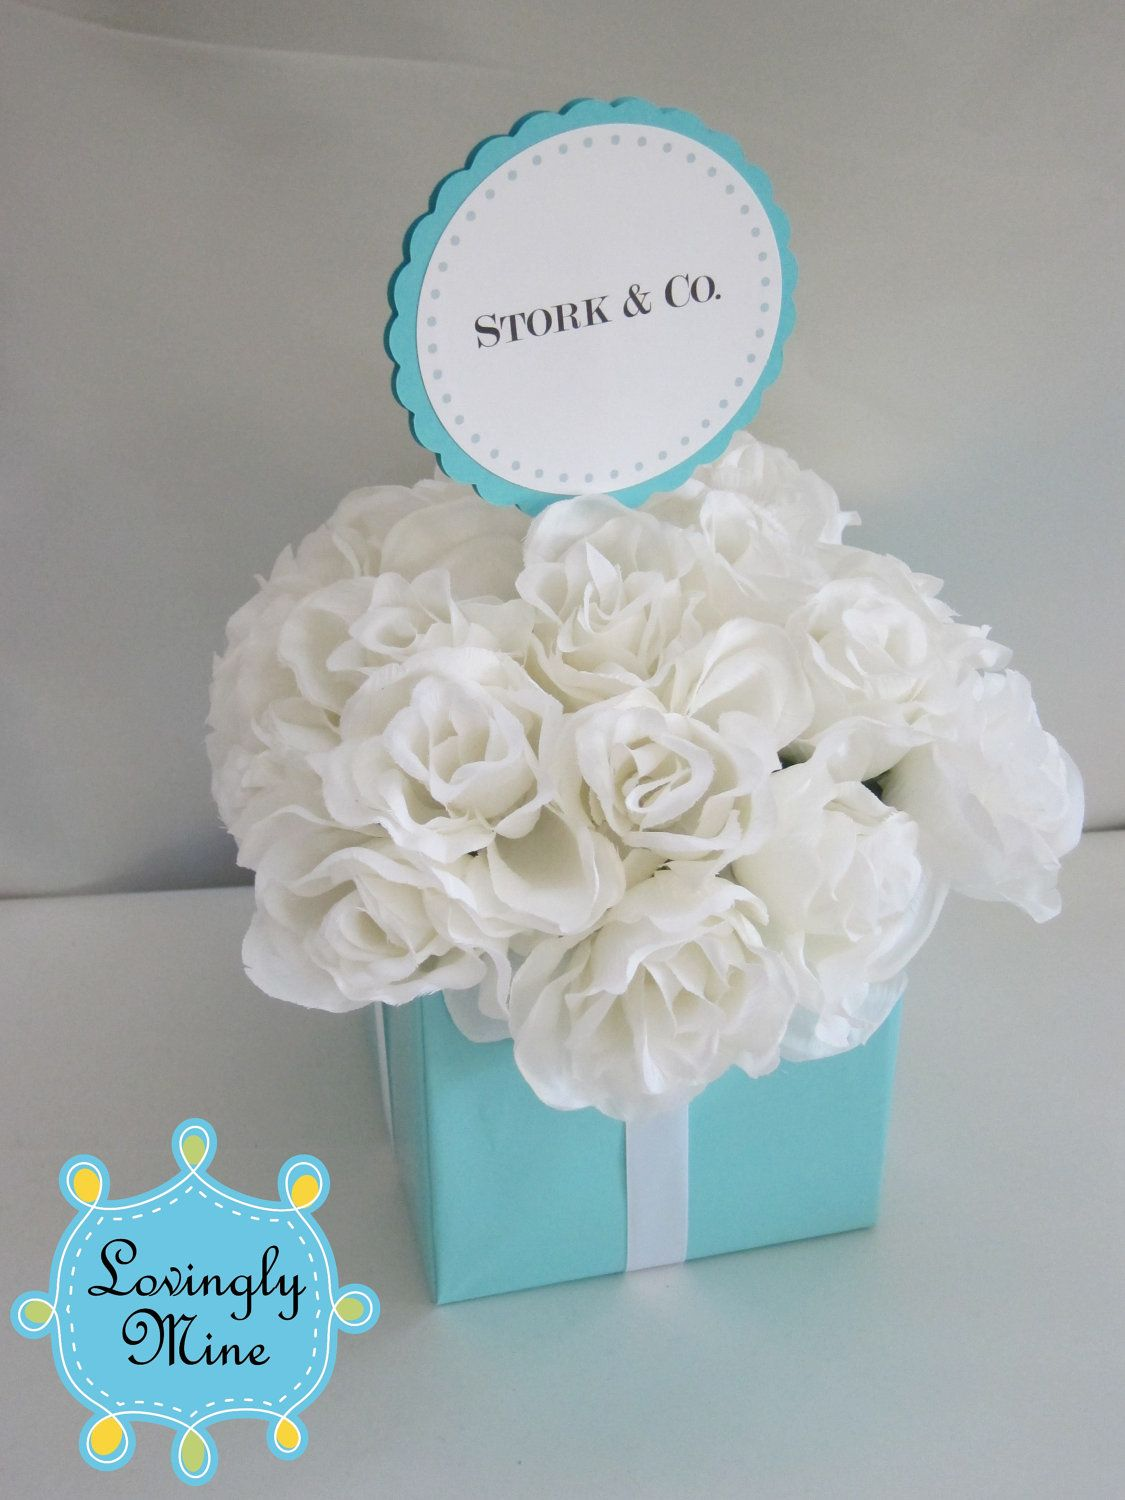 Tiffany baby shower new ideas pinterest tiffany blue baby shower centerpieces stork co tiffany co inspired box tiffany blue and white reviewsmspy